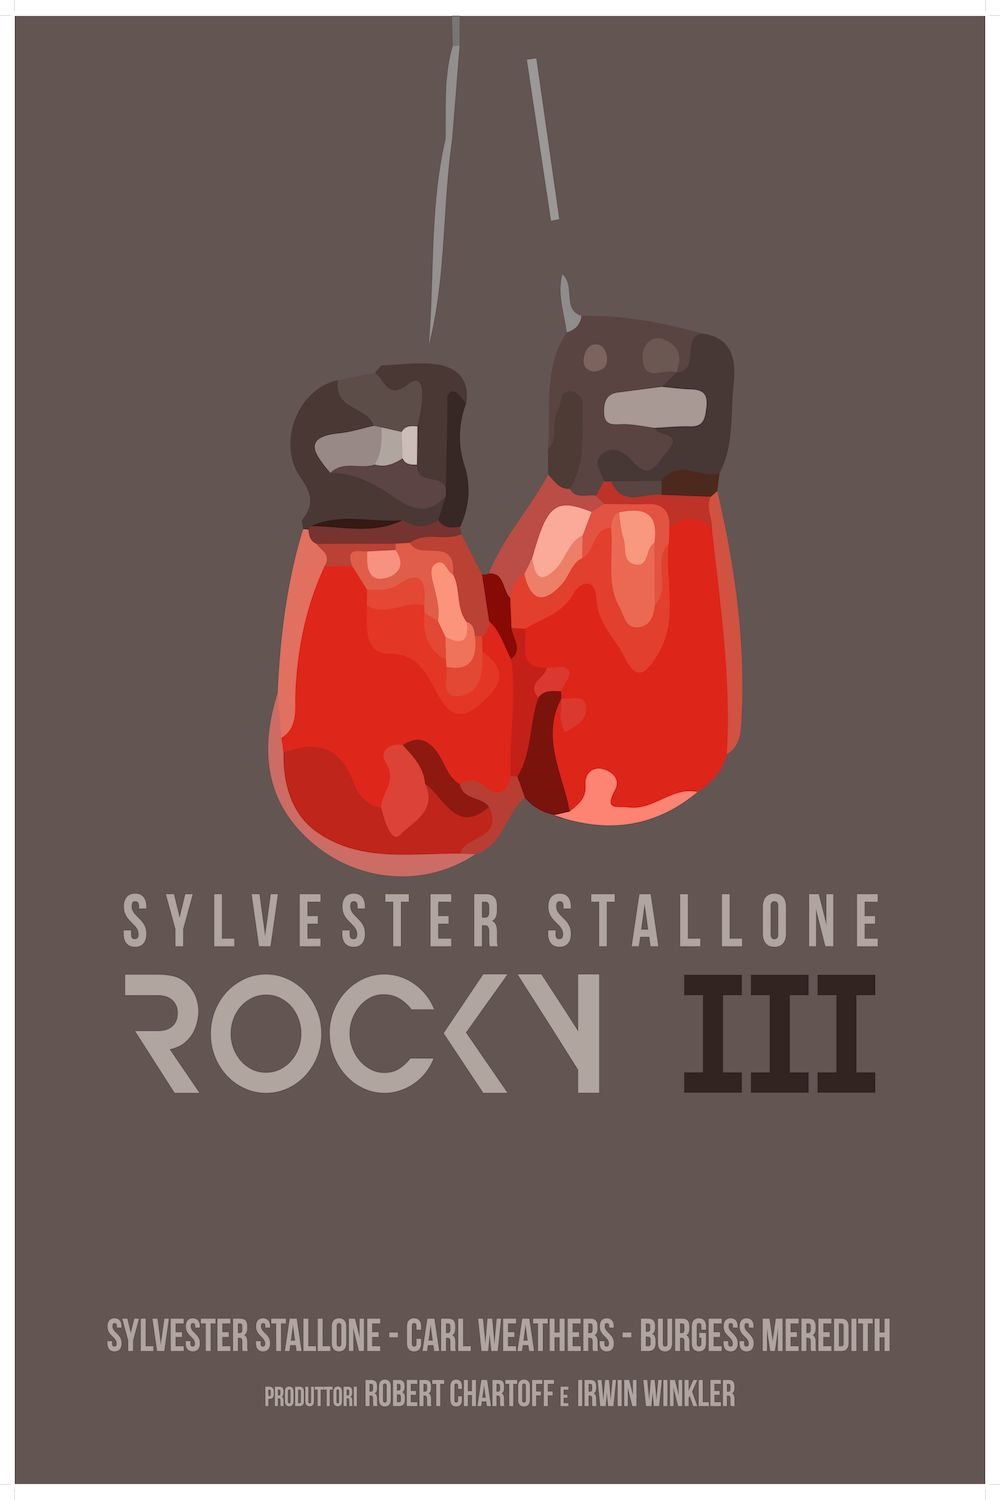 Custom Canvas Mural Rocky Poster Sylvester Stallone Rocky Boxing Movie Wall Stickers Bedroom Decoration Office Decor Gift #678# image